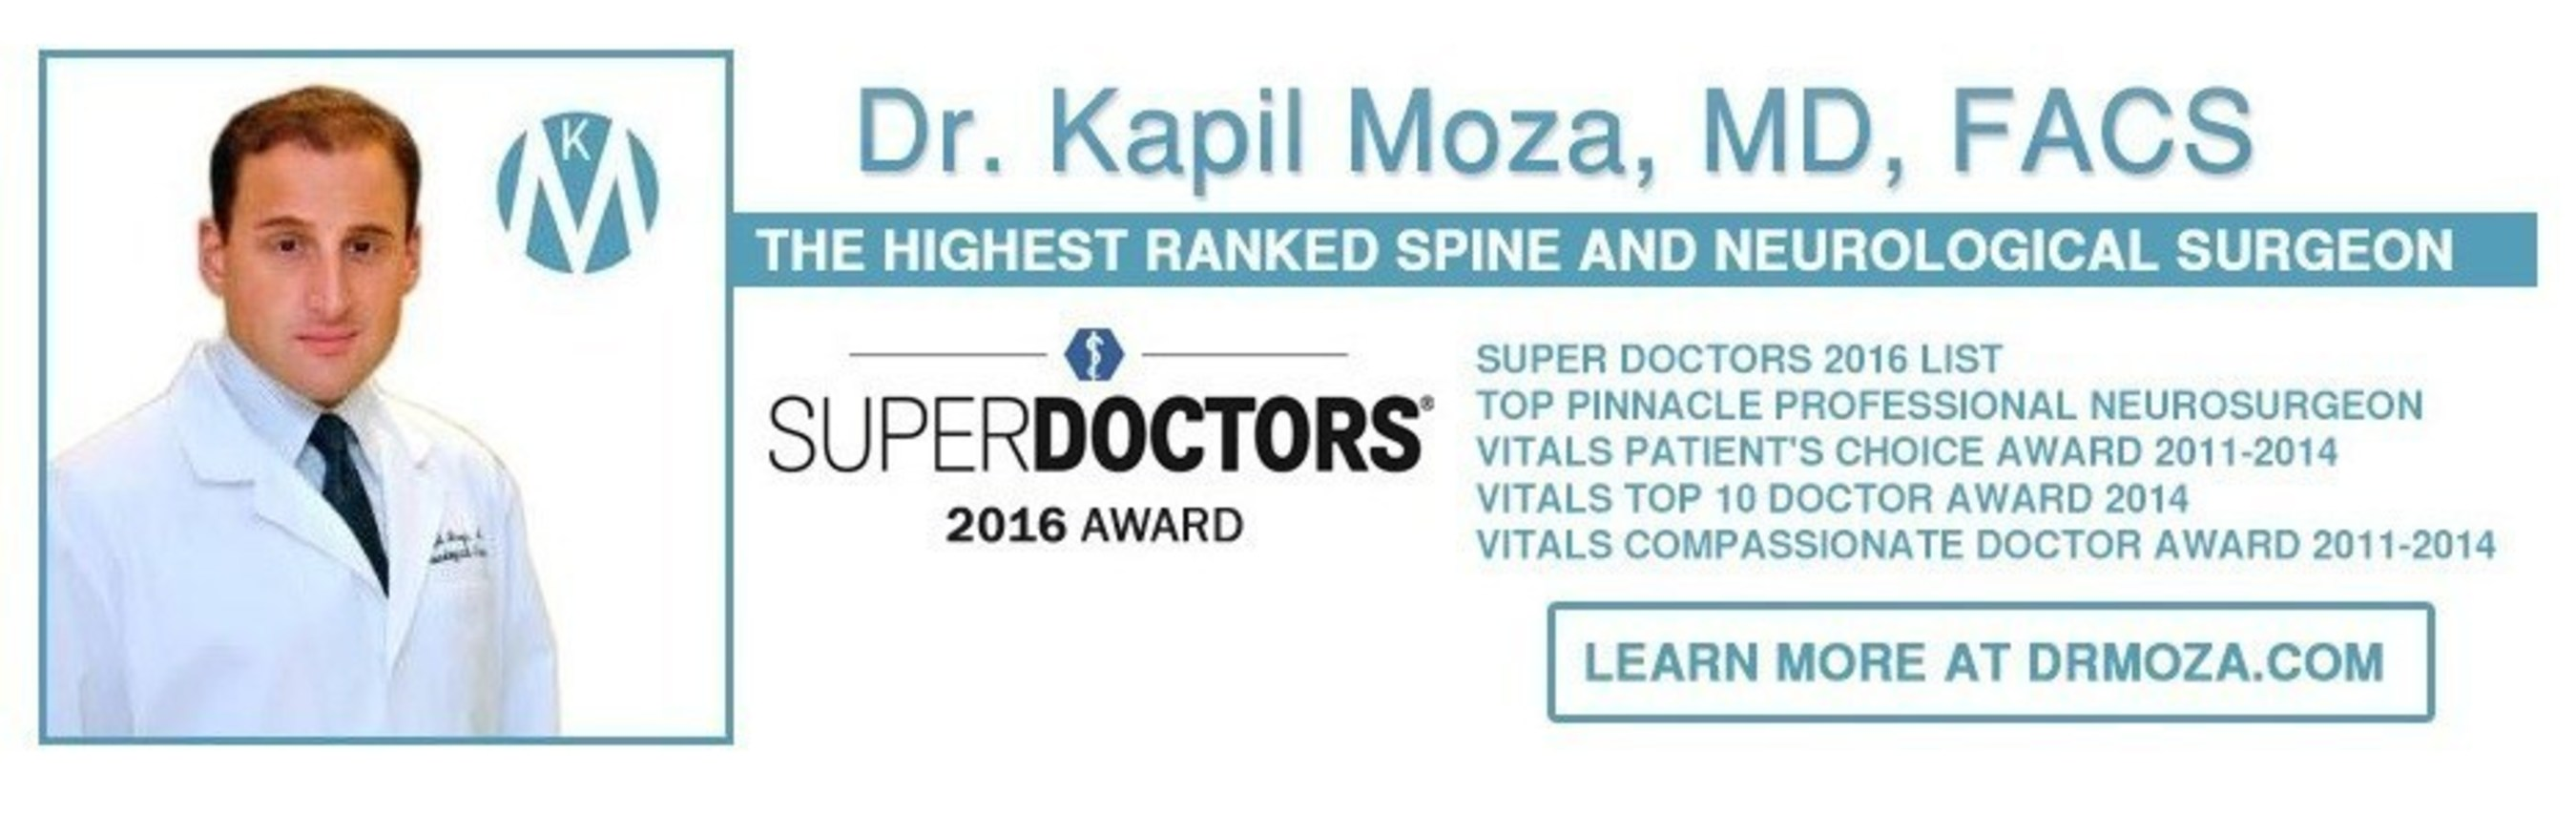 Dr. Kapil Moza of Thousand Oaks, CA has made the prestigious Southern California Super Doctors List for 2016.